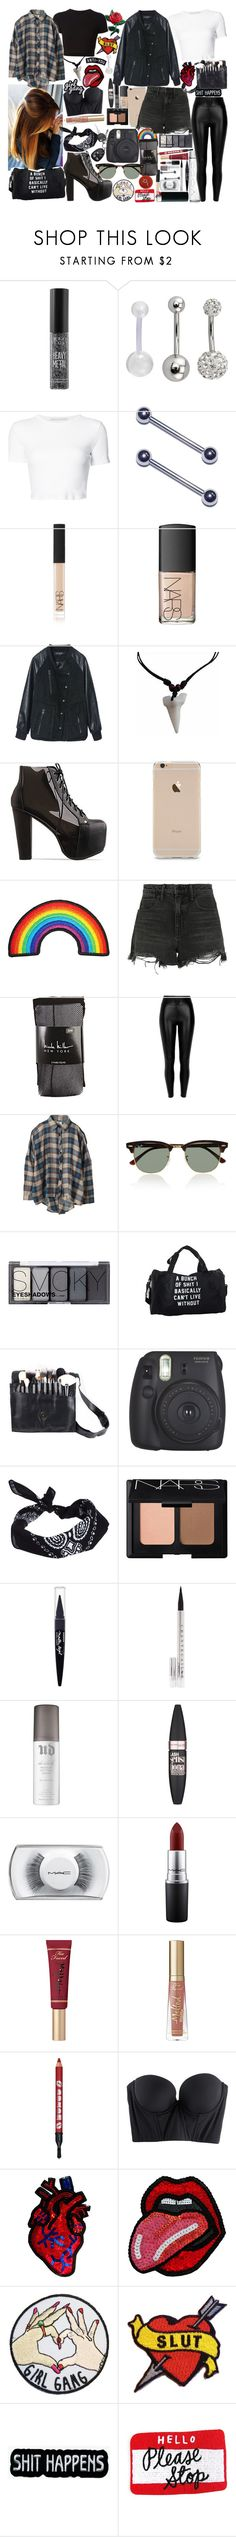 """Untitled #329"" by jade-bellex ❤ liked on Polyvore featuring Urban Decay, Rosetta Getty, NARS Cosmetics, Jeffrey Campbell, Alexander Wang, Nicole Miller, Getting Back To Square One, Black, UNIF and Ray-Ban"